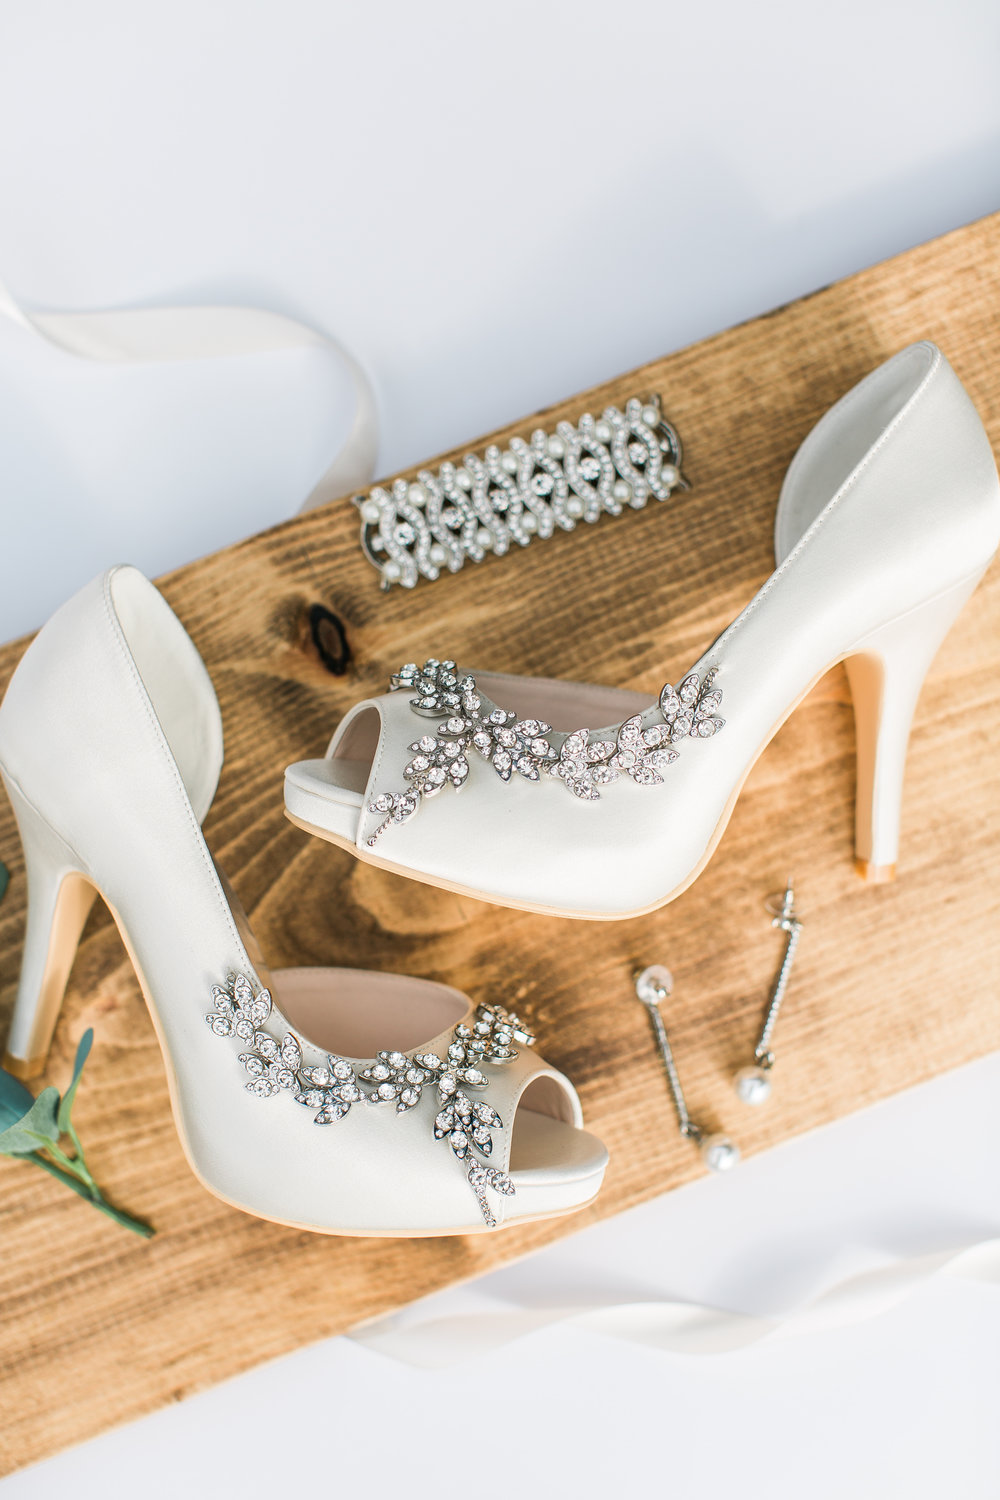 Bride's shoes and jewelry on rustic board bridal styling details Minnesota wedding photography Mallory Kiesow Photography